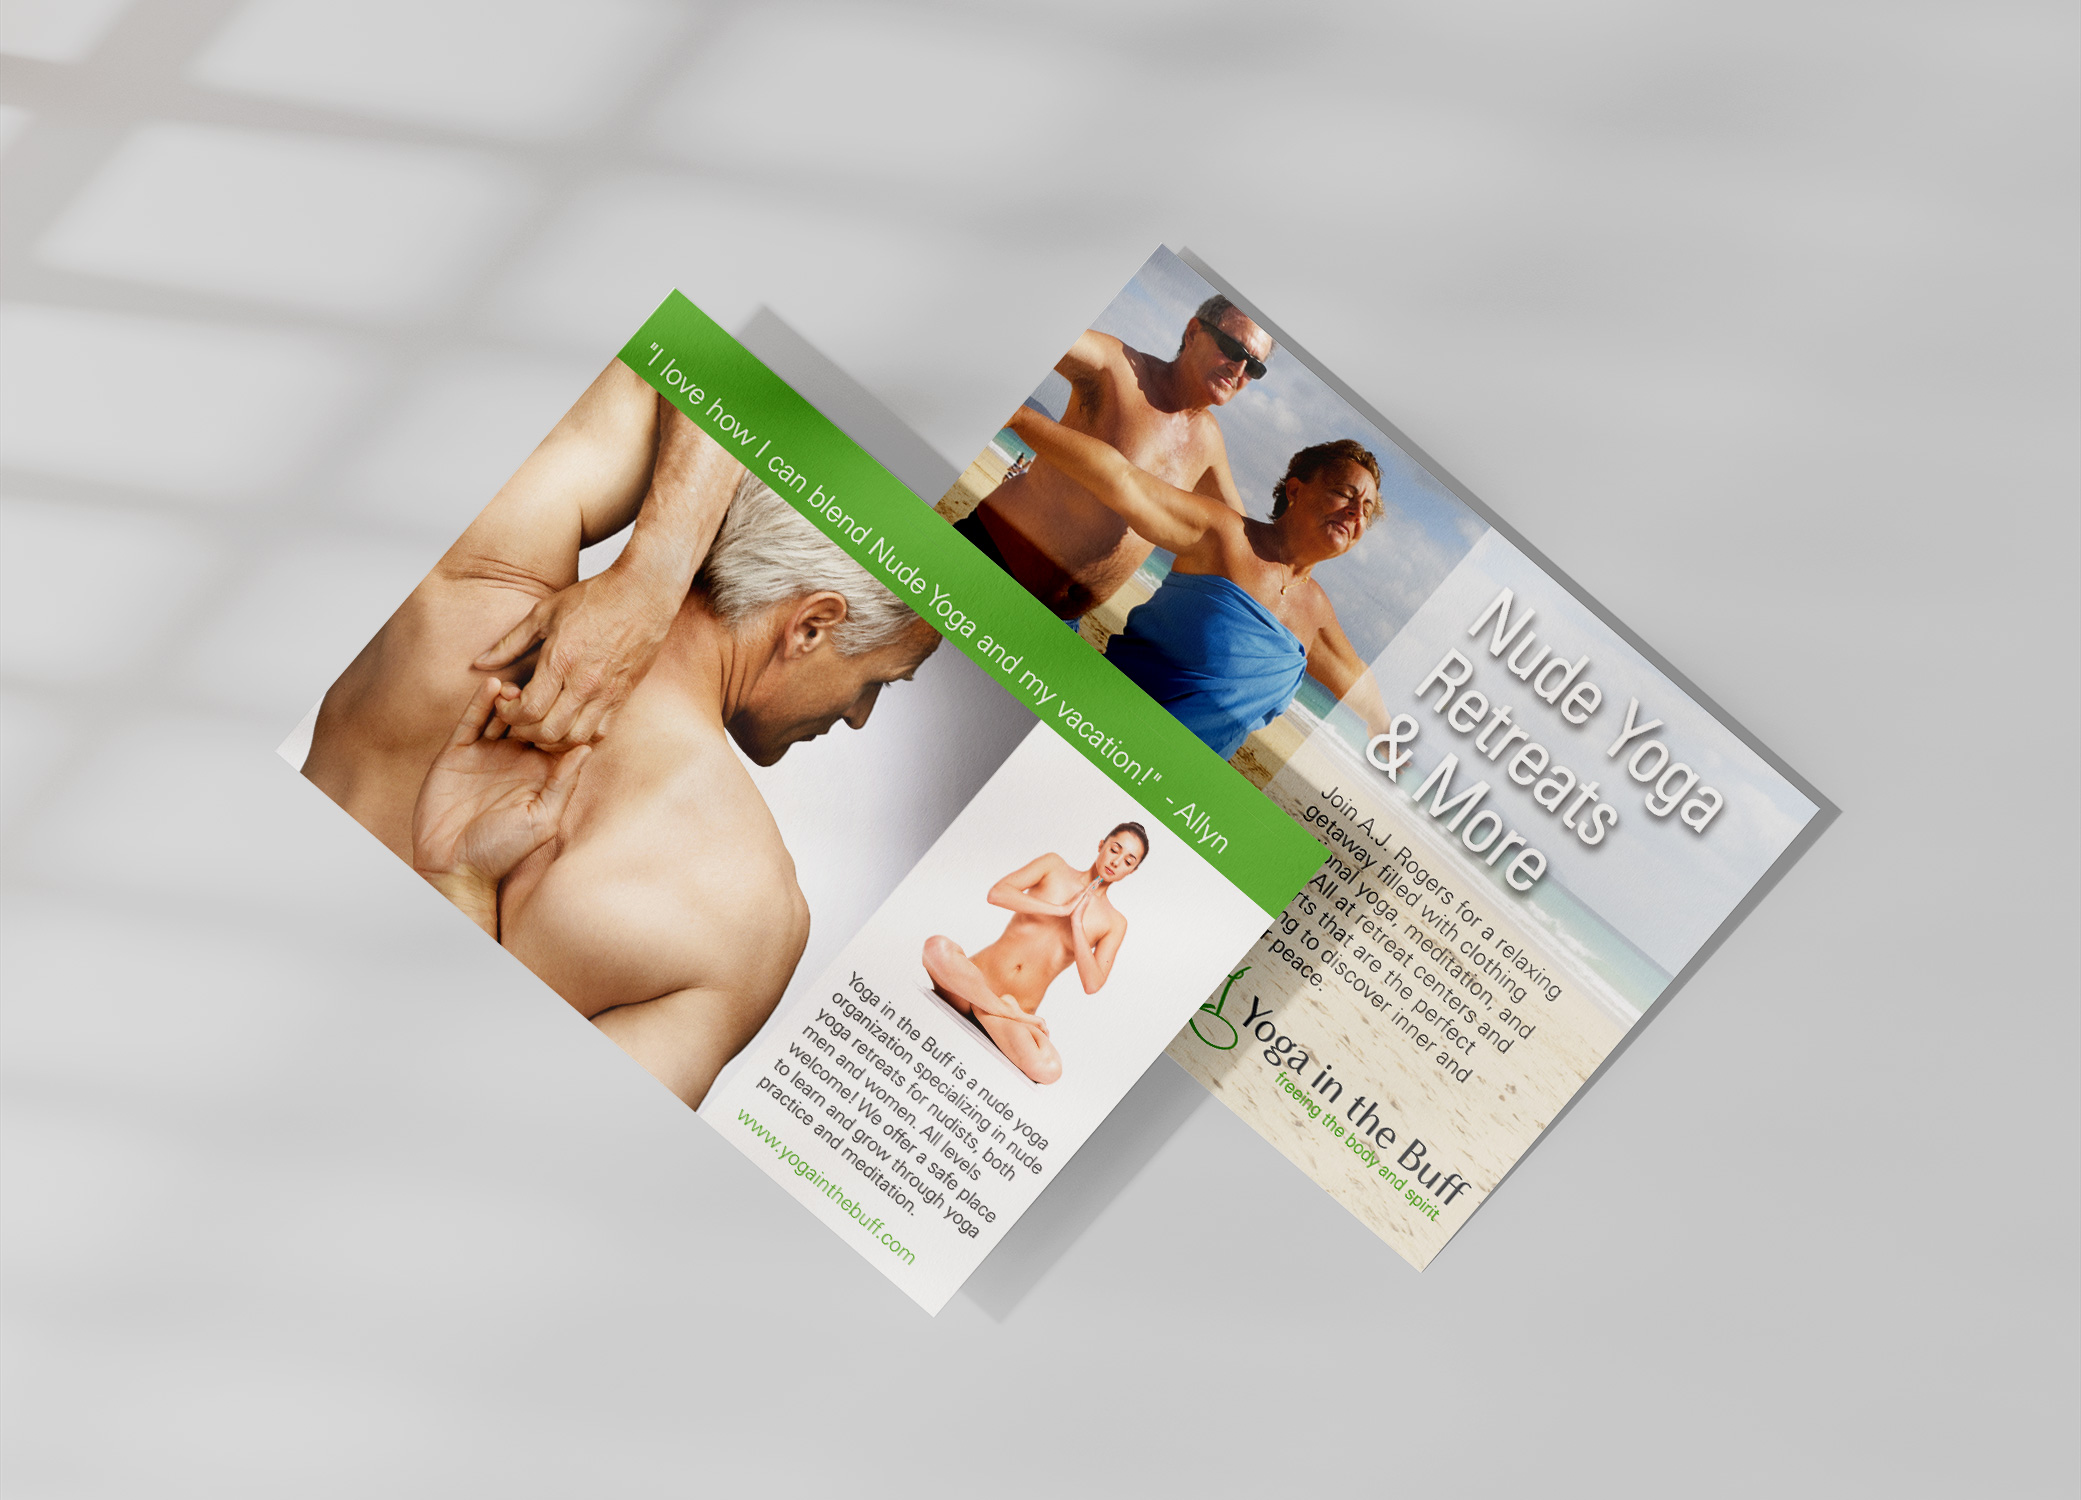 Yoga in the Buff flyer for yoga retreats for older clientele with images of semi-nude practitioners on the beach.